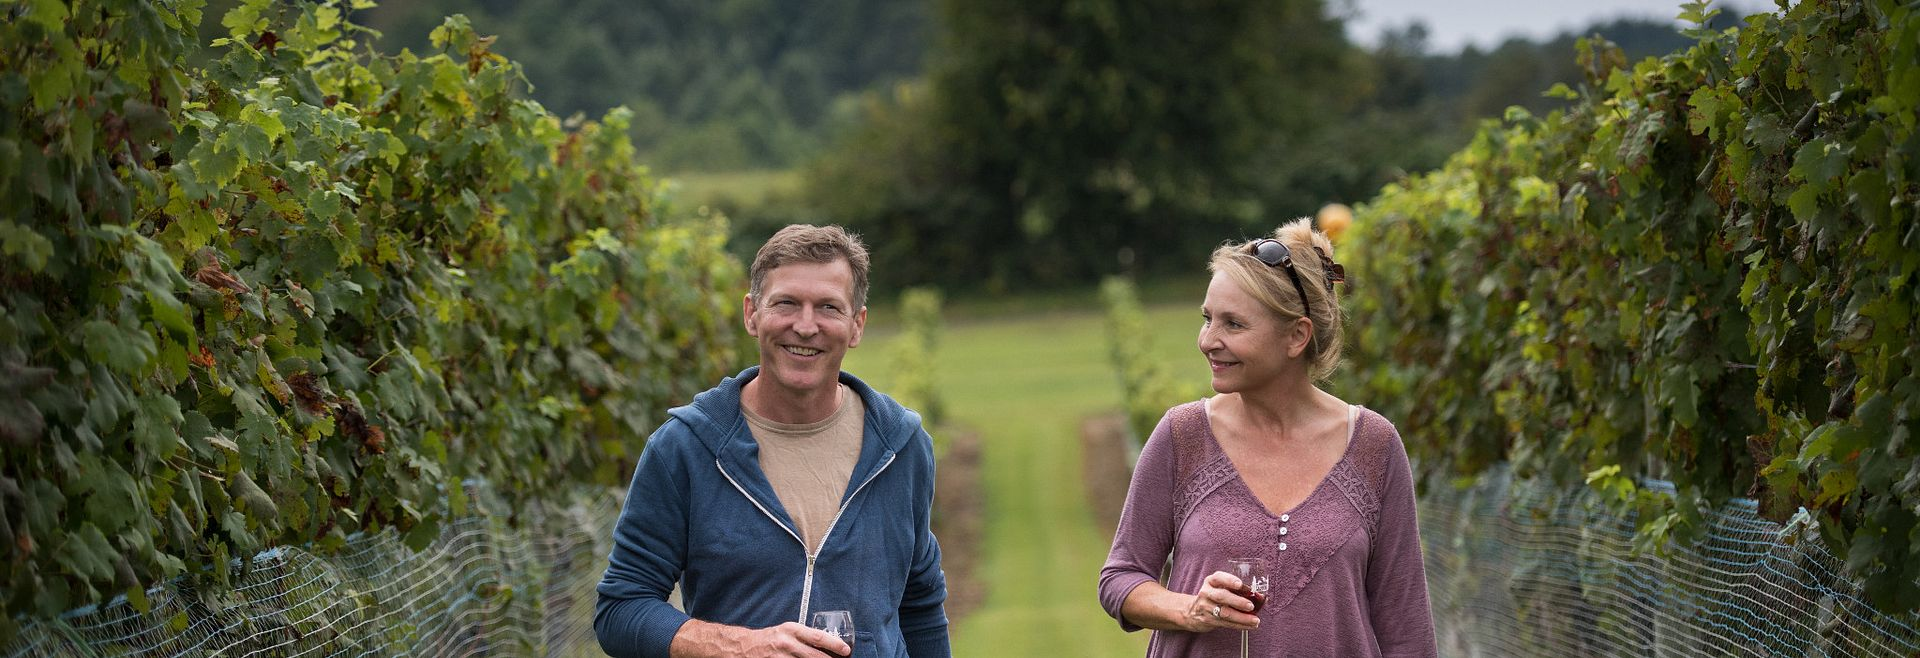 Couple walking in the vineyards